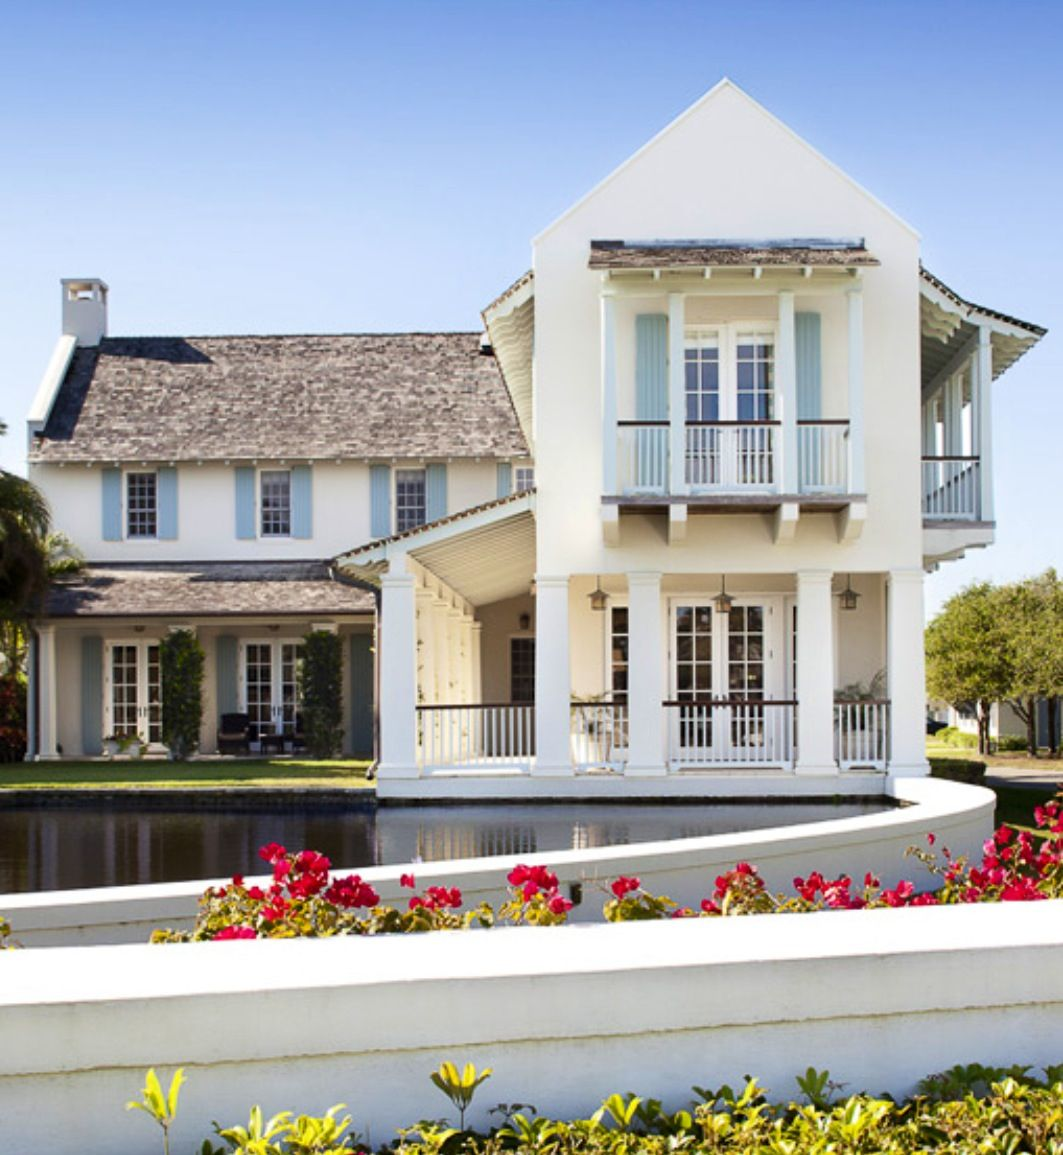 Pictures Of Beach Houses In Florida: Old St. Augustine Style Architecture Inspiration For New